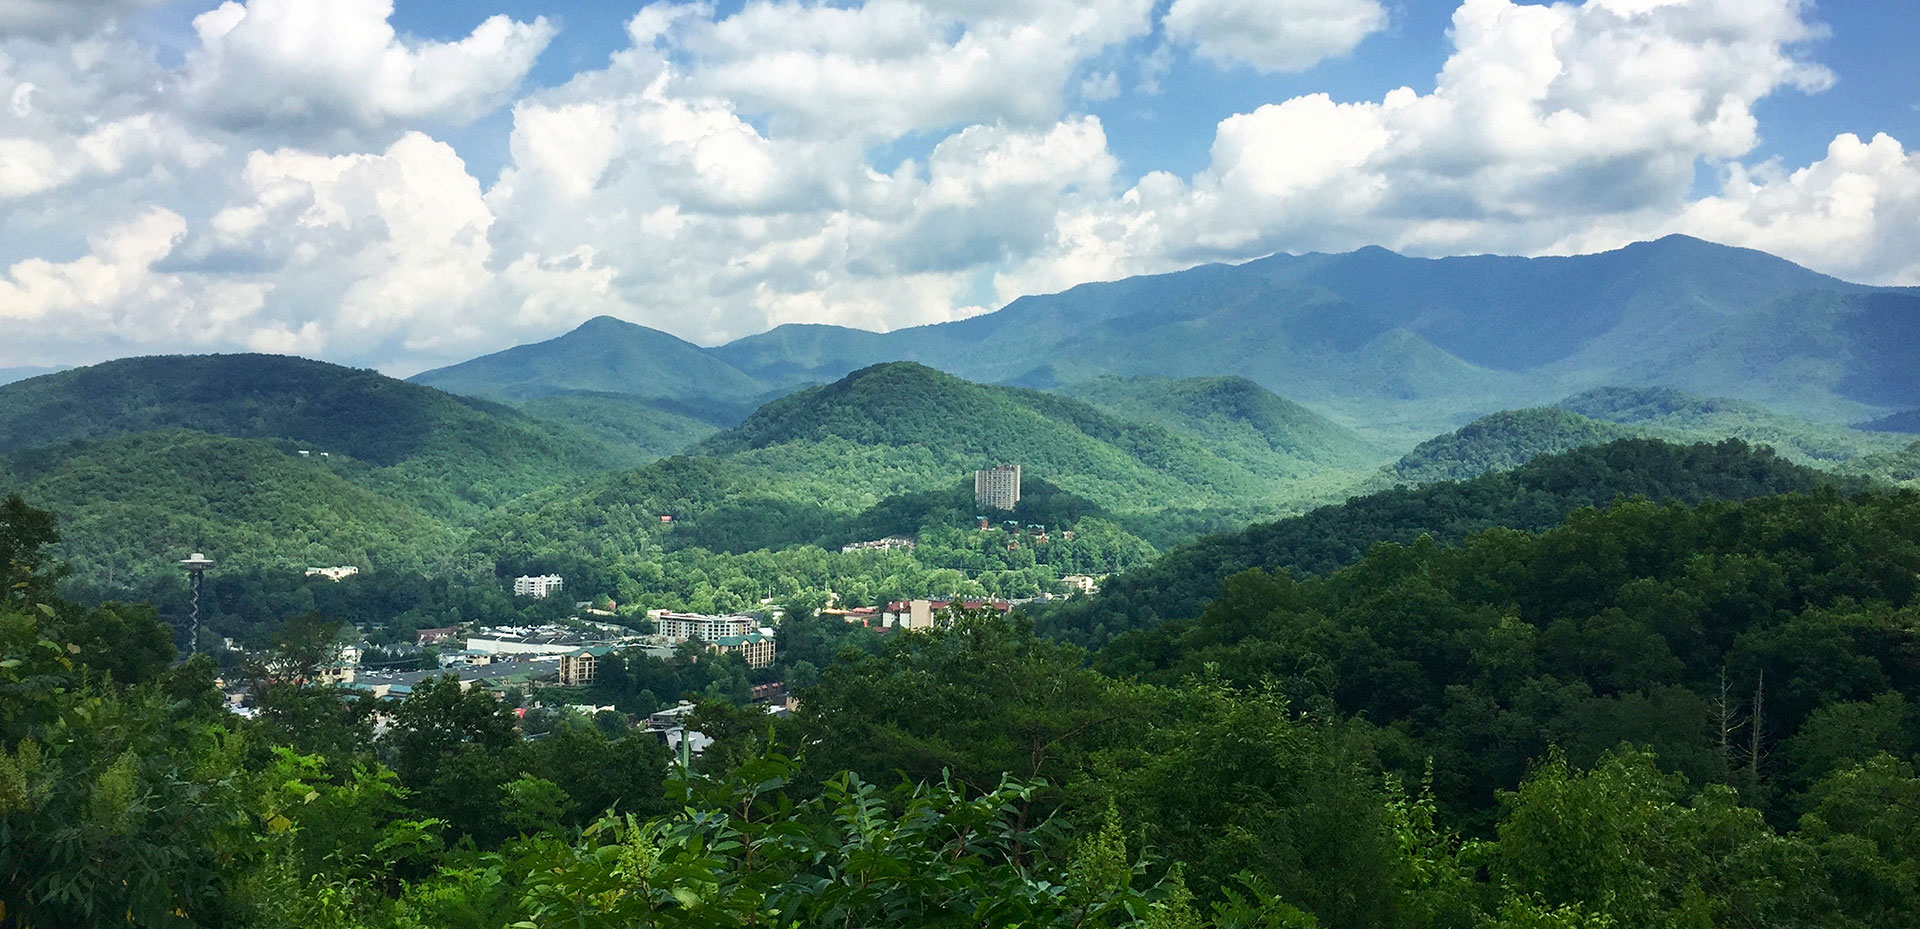 Downtown Overview | Gatlinburg Attractions | Things To Do In Gatlinburg, TN